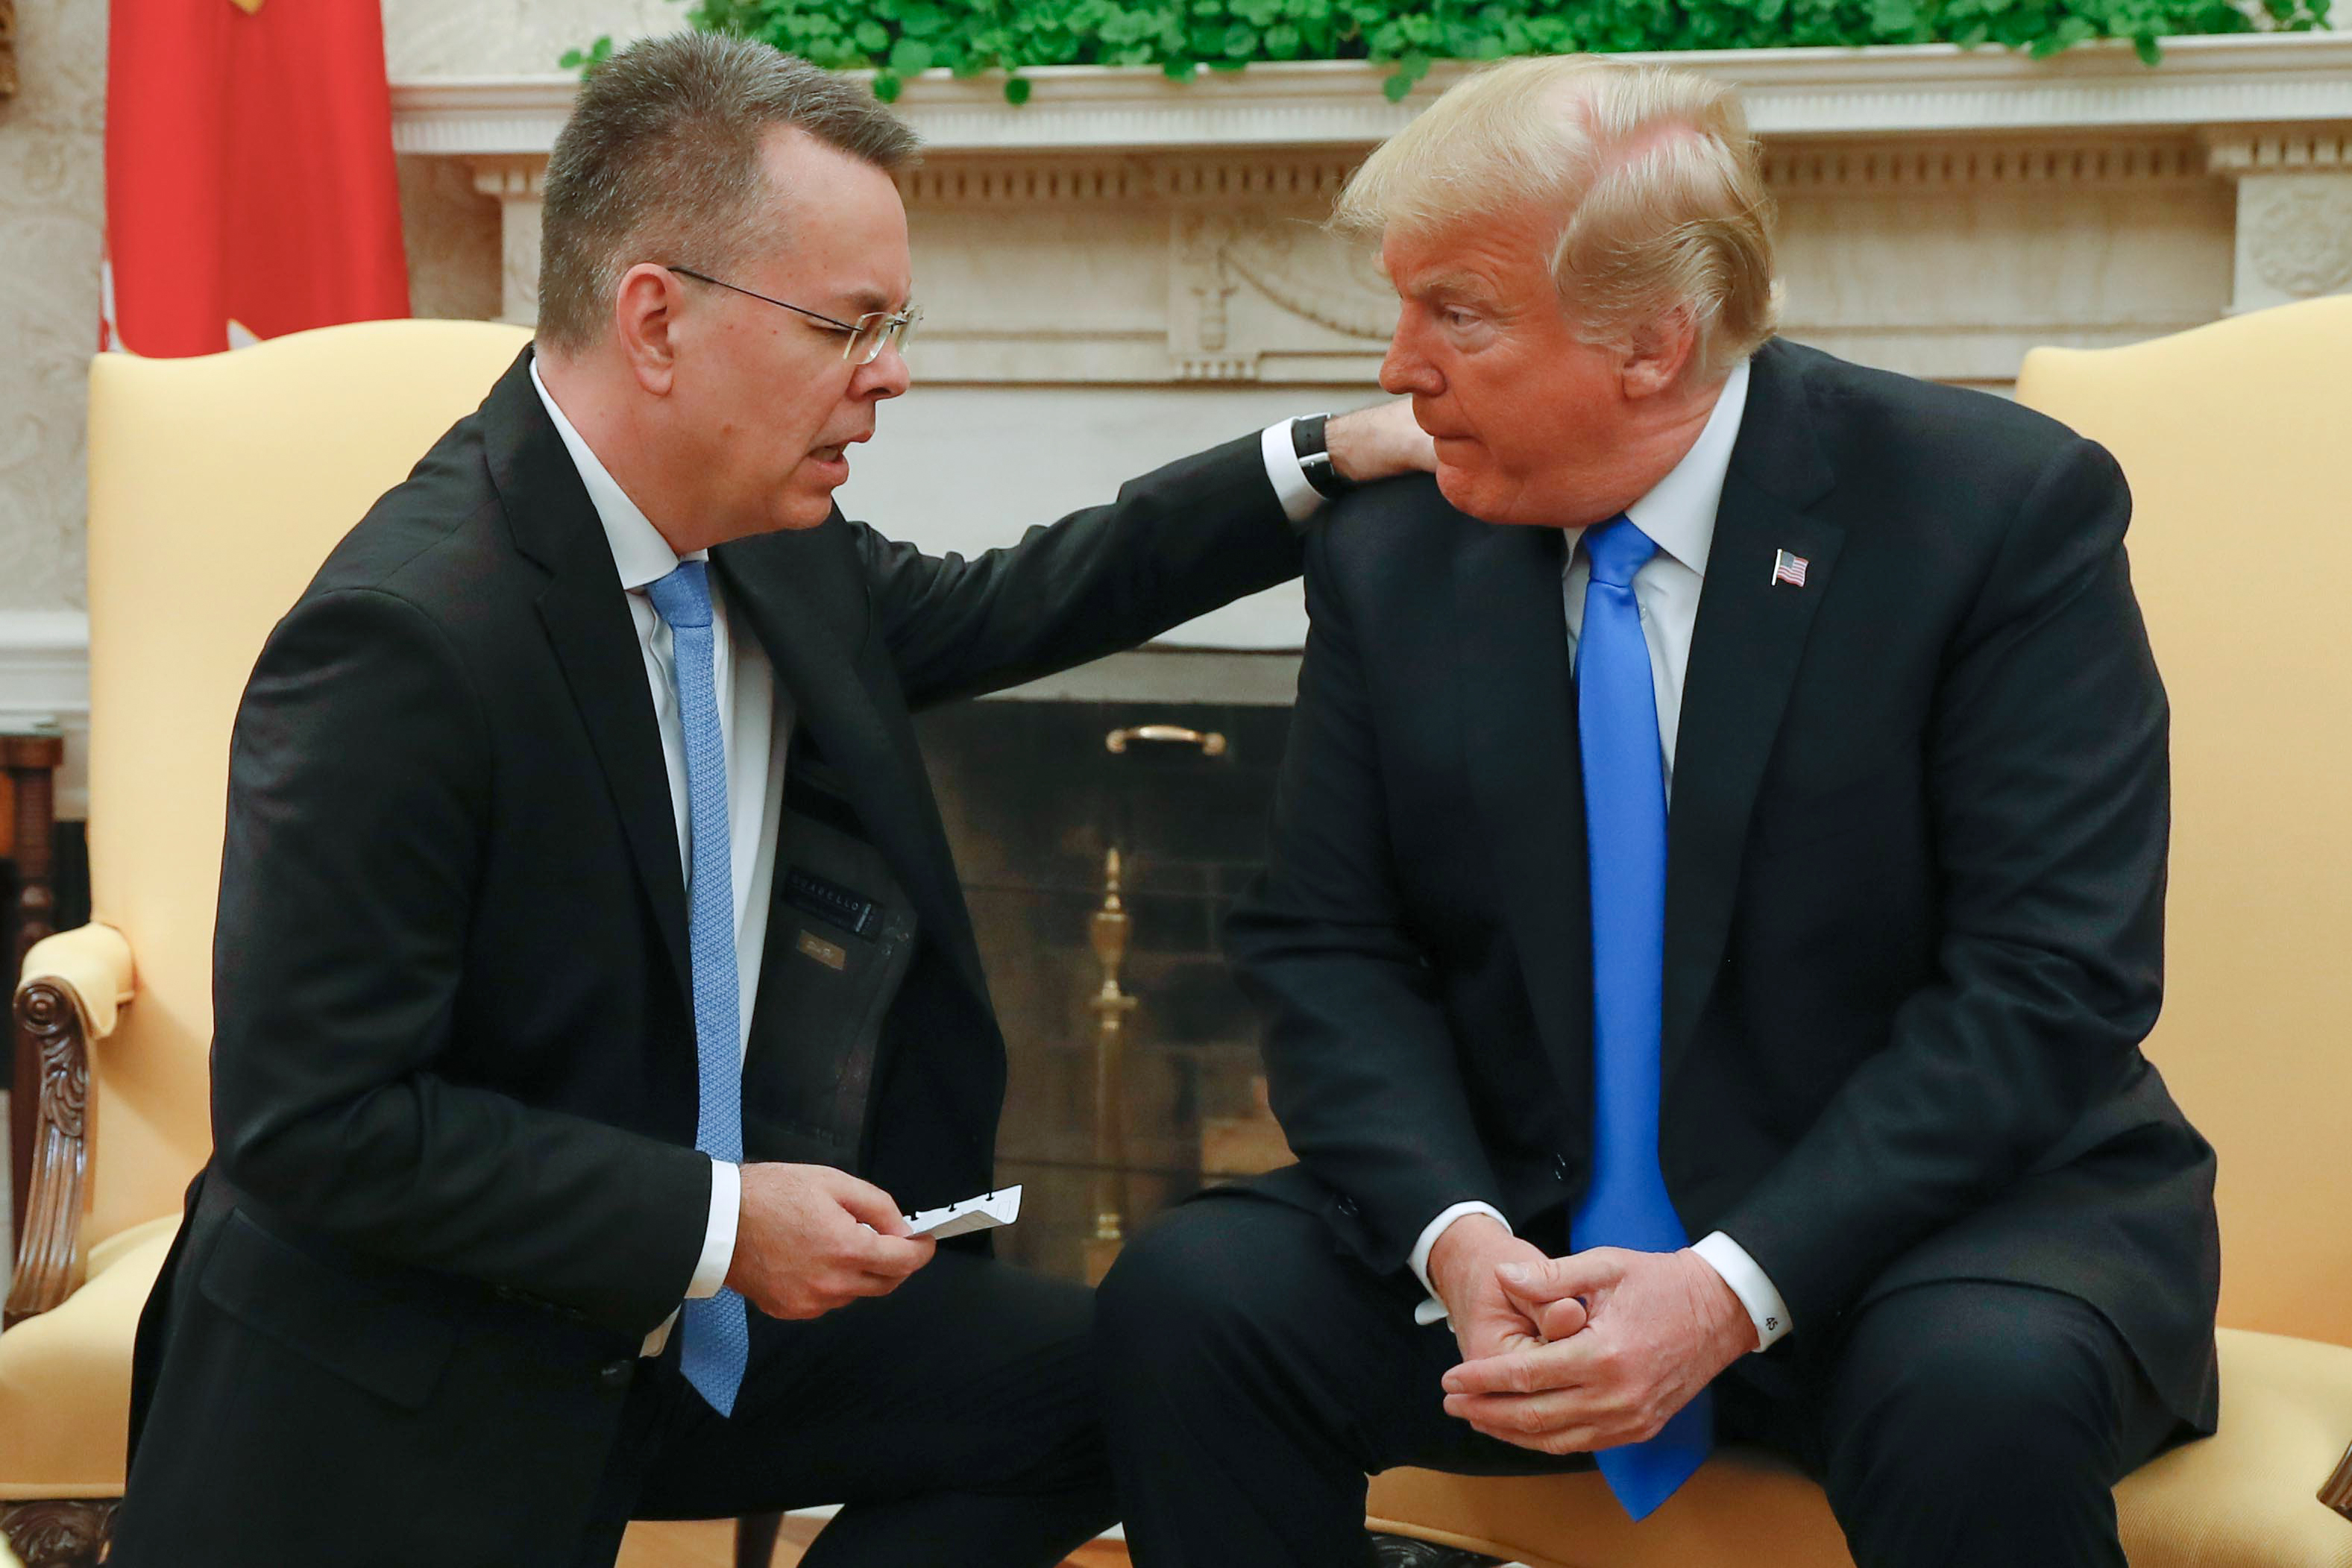 Freed American pastor Andrew Brunson prays for President Donald Trump at the White House in Washington, DC, October 13, 2018.